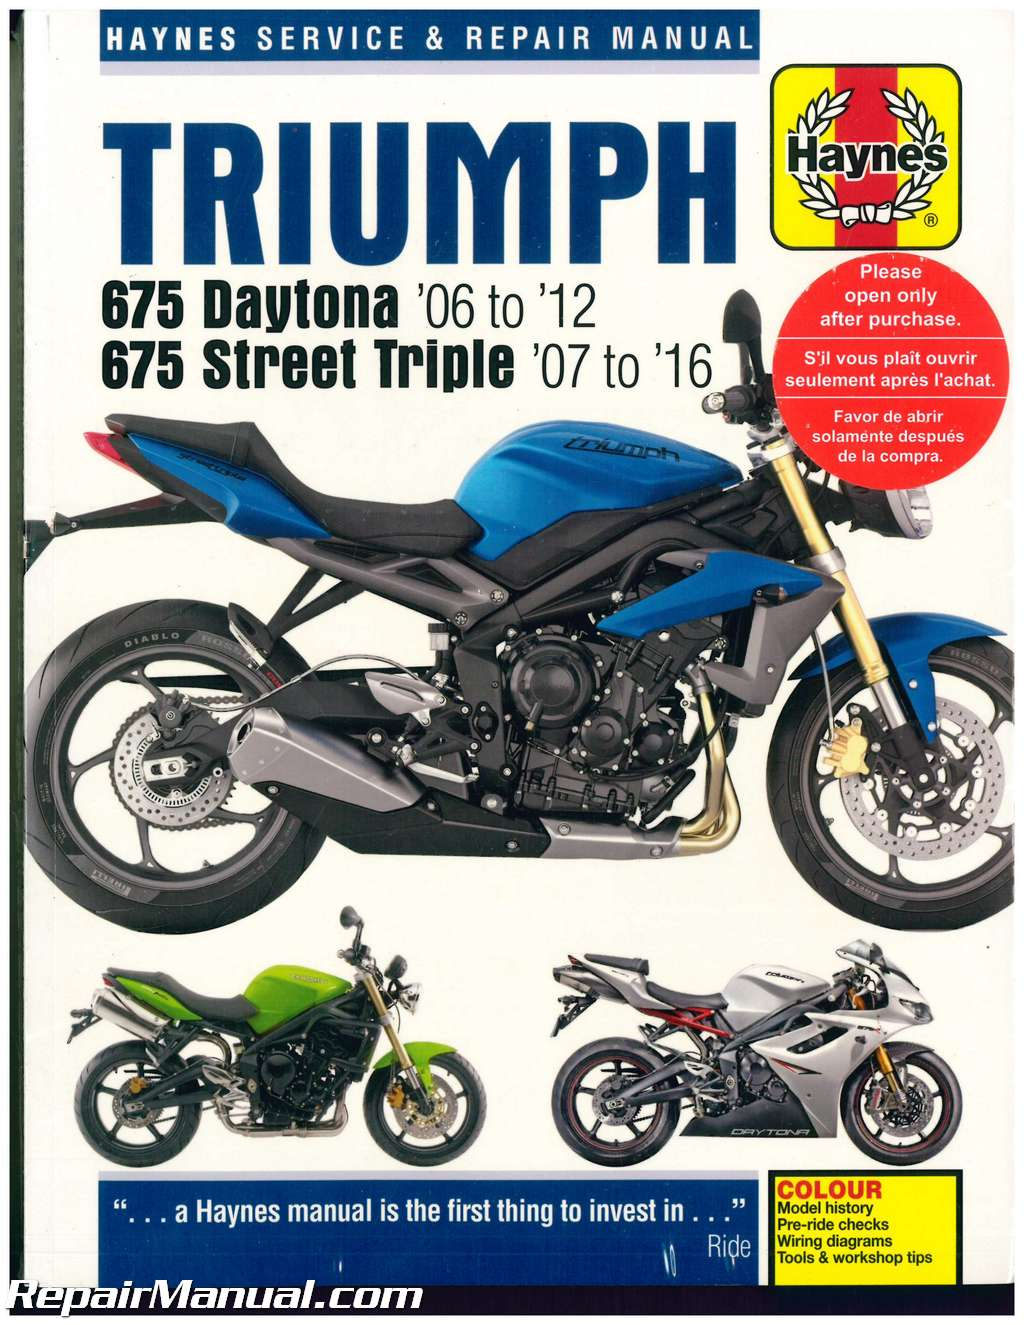 haynes triumph 675 daytona 2006 2012 street triple 2007 2016 rh  repairmanual com triumph tr7 repair manual triumph workshop manual pdf